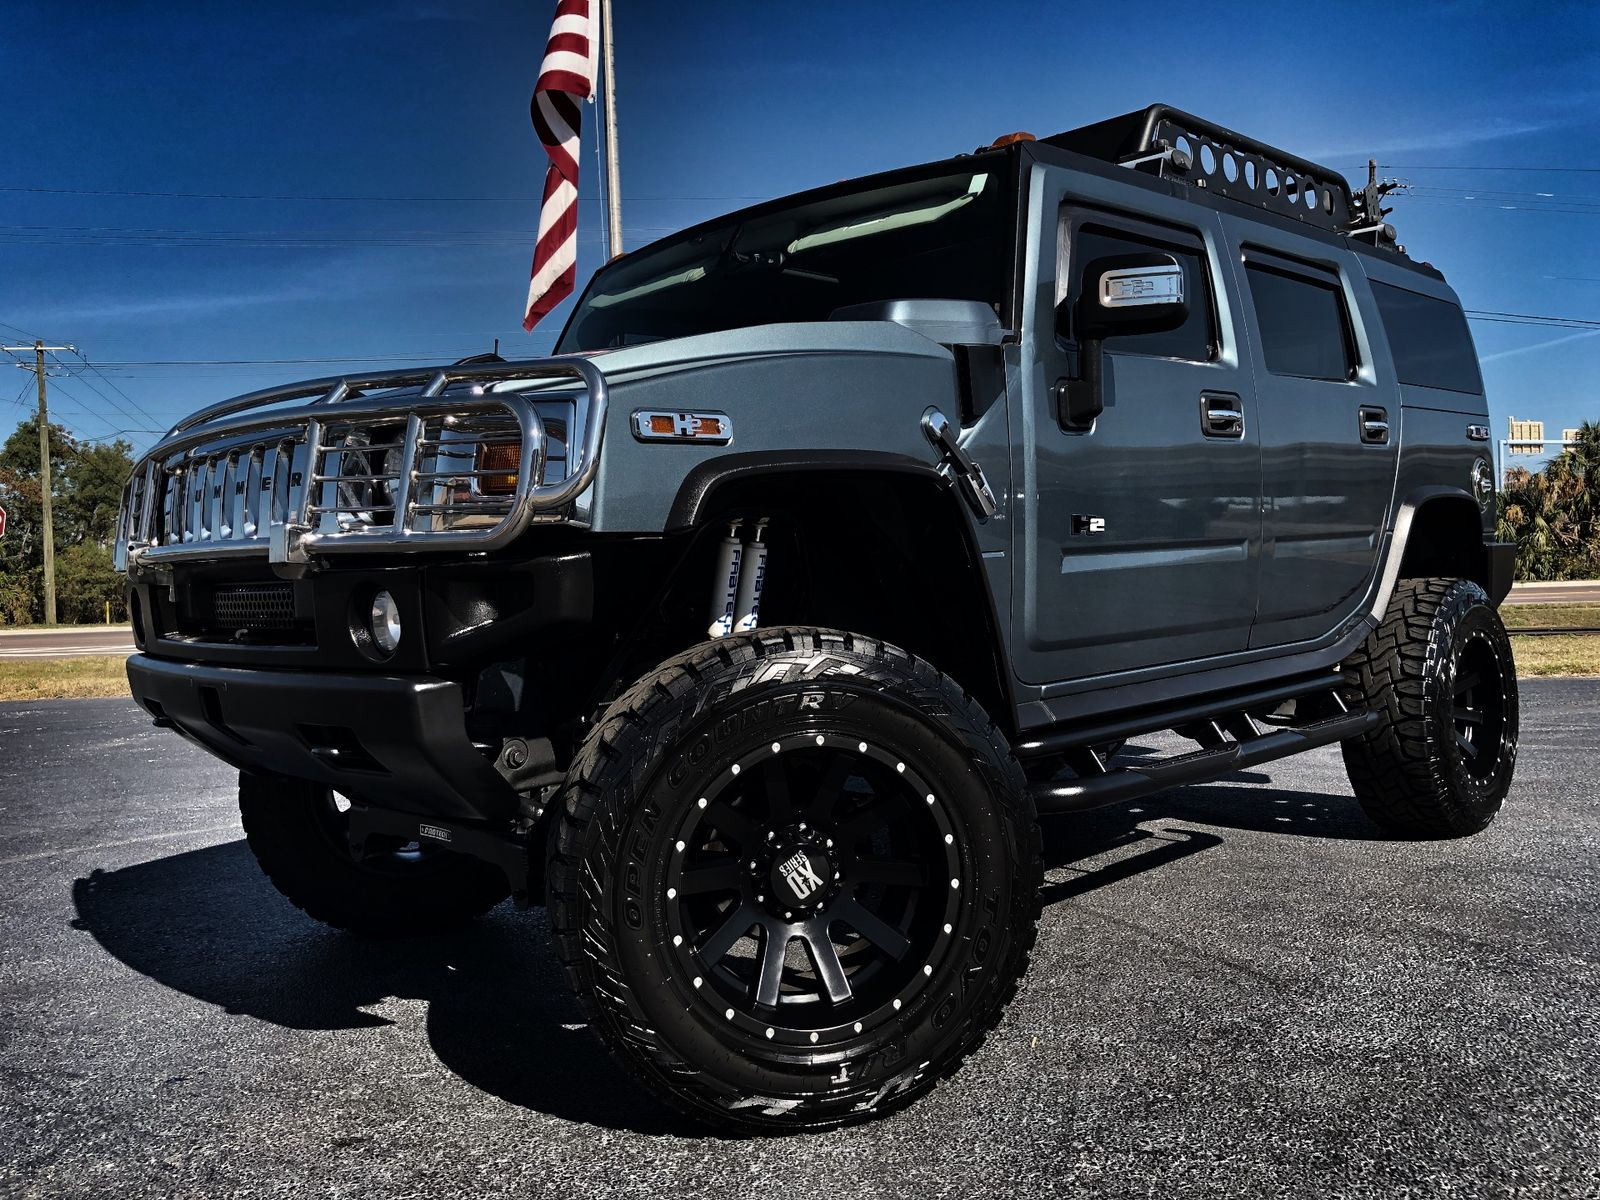 2007 Hummer H2 Lifted Image collections Cars Wallpaper Free